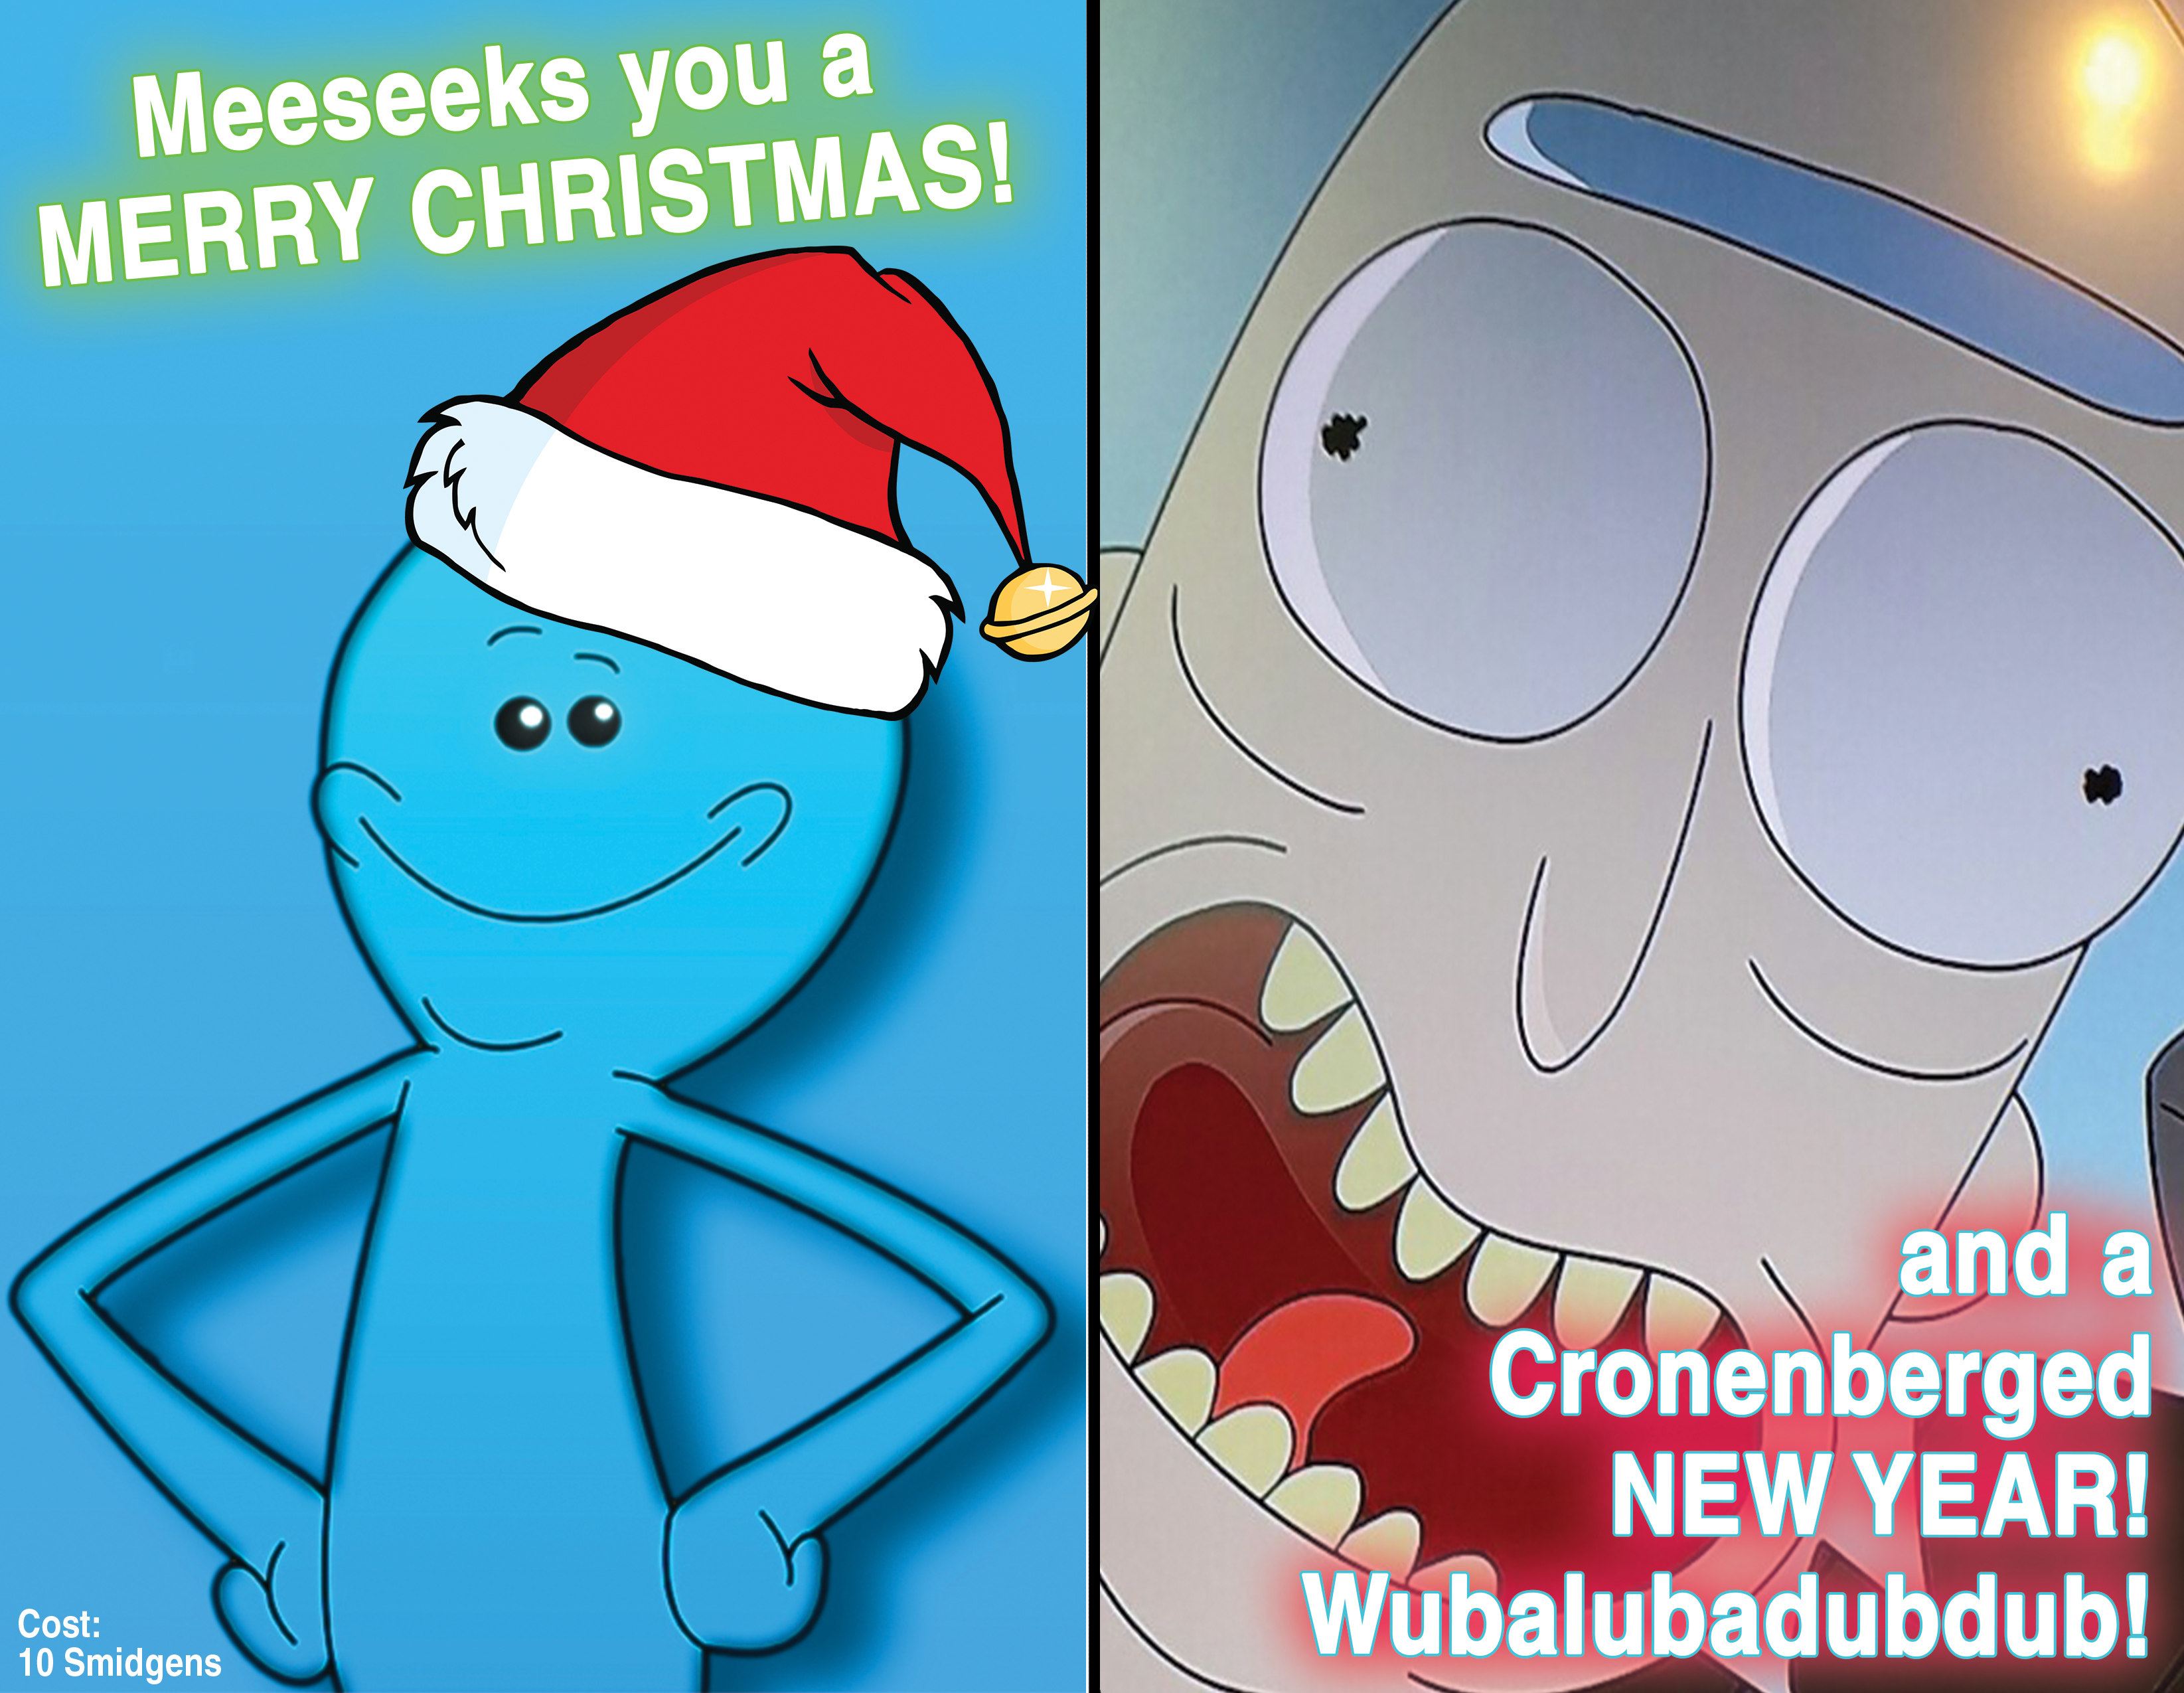 Rick and Morty Christmas Card by texans07 on DeviantArt